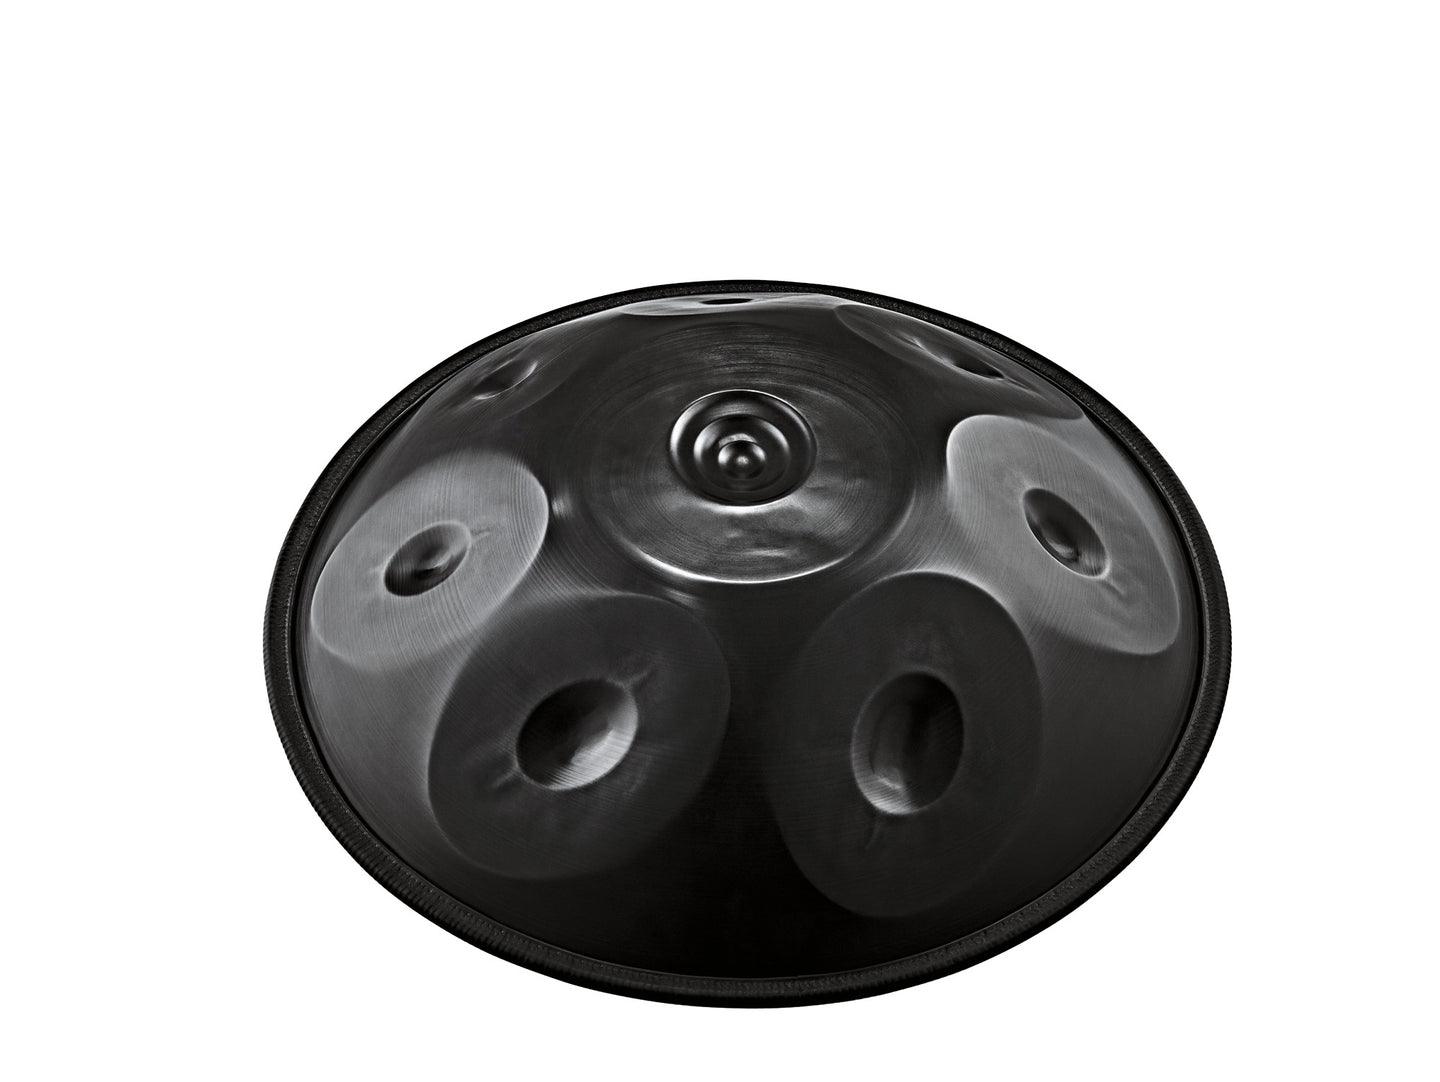 HANDPAN MEINL SONIC ENERGY ART HANDPAN HD7